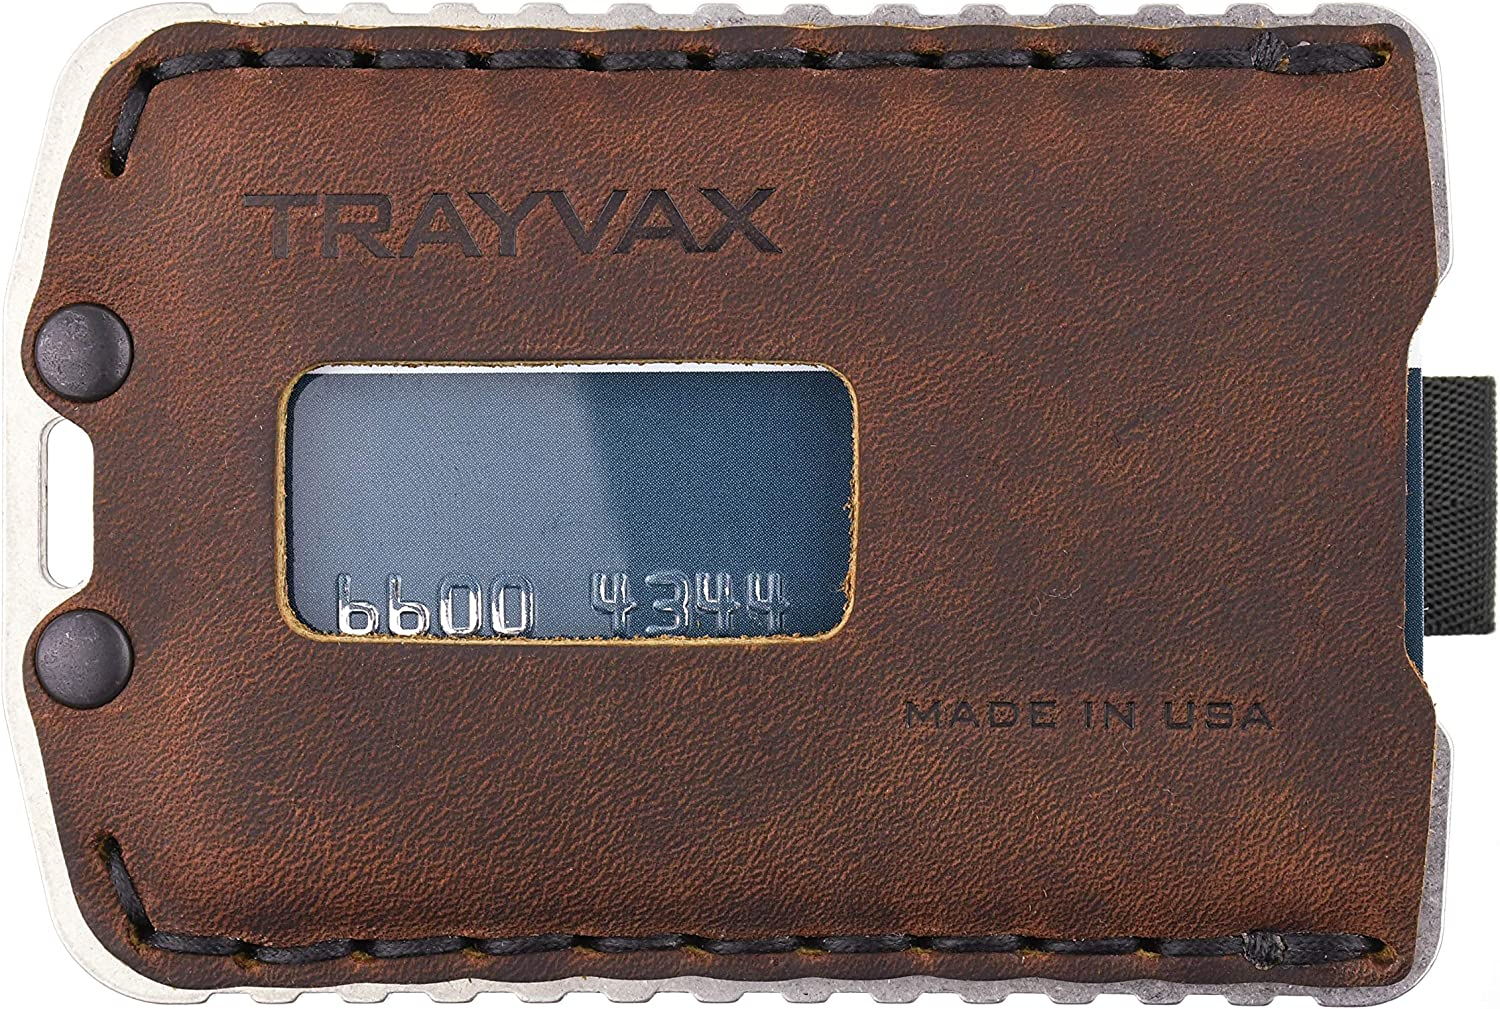 Trayvax Ascent (Stainless/Mississippi Mud)